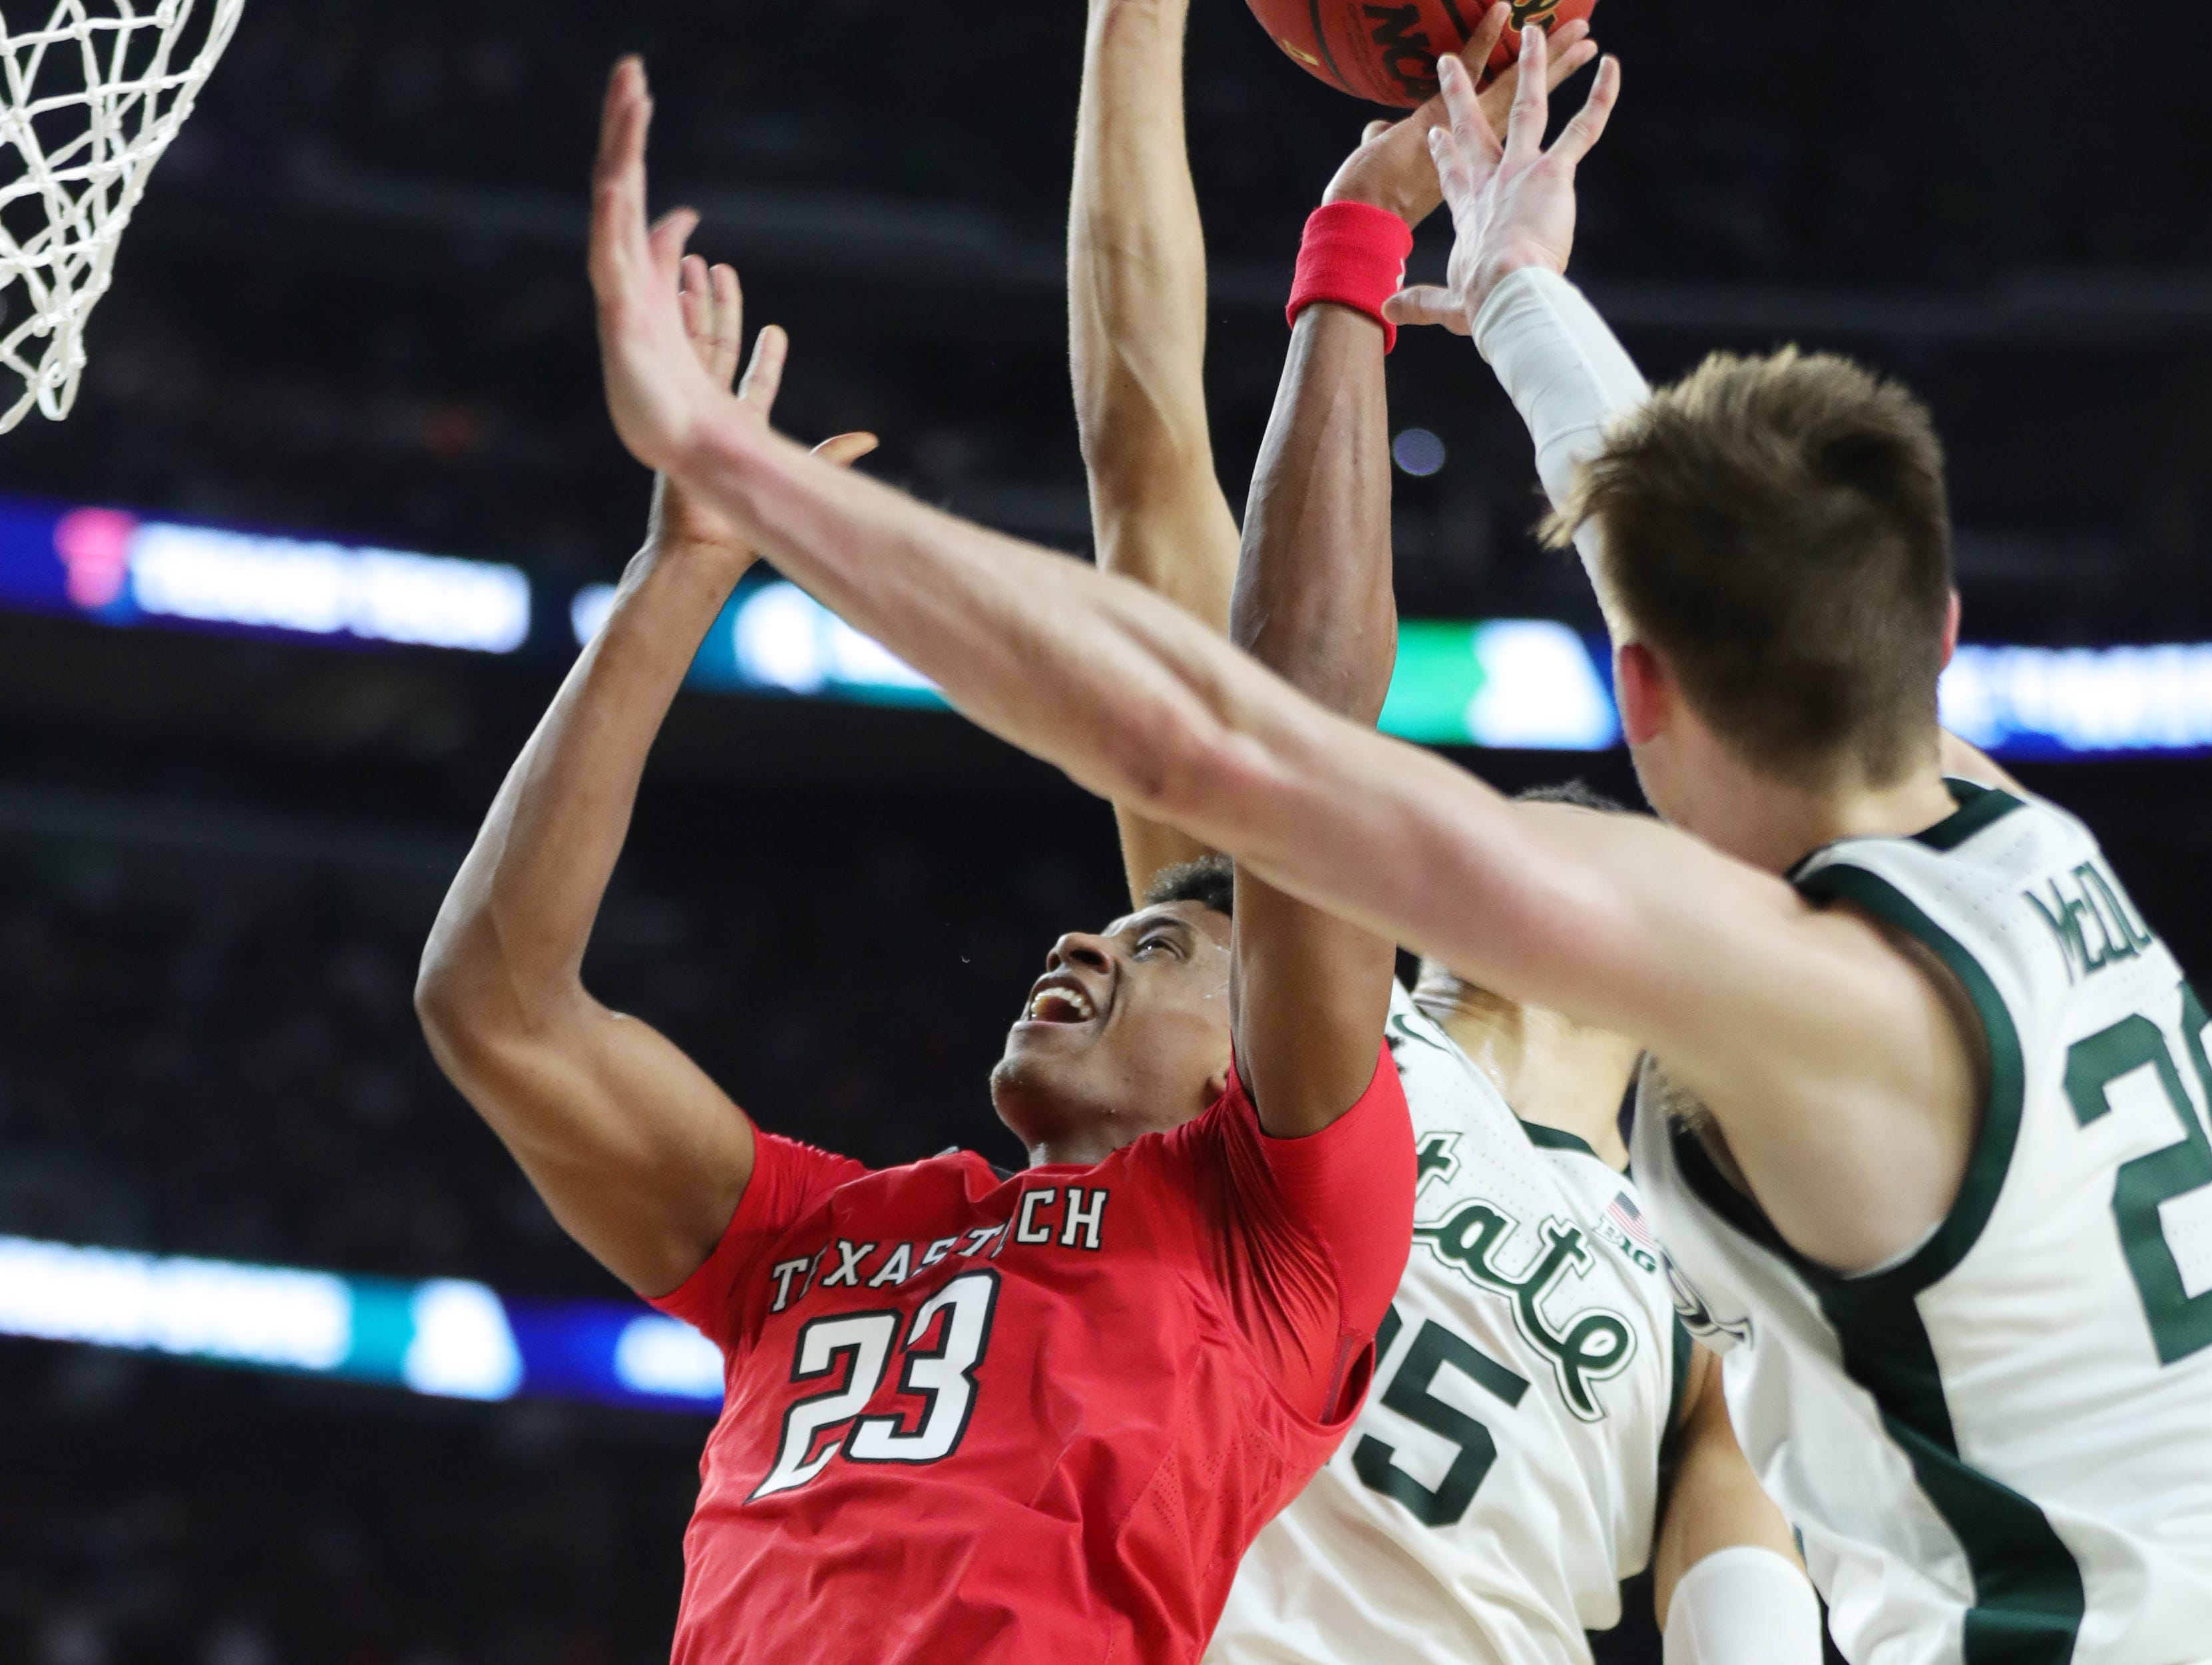 Texas Tech guard Jarrett Culver (23) attempts to shoot around Michigan State forward Thomas Kithier (15) and guard Matt McQuaid (20) during the first half of the Spartan's Final Four game at U.S. Bank Stadium in Minneapolis, Minnesota on Saturday, April 06, 2019.